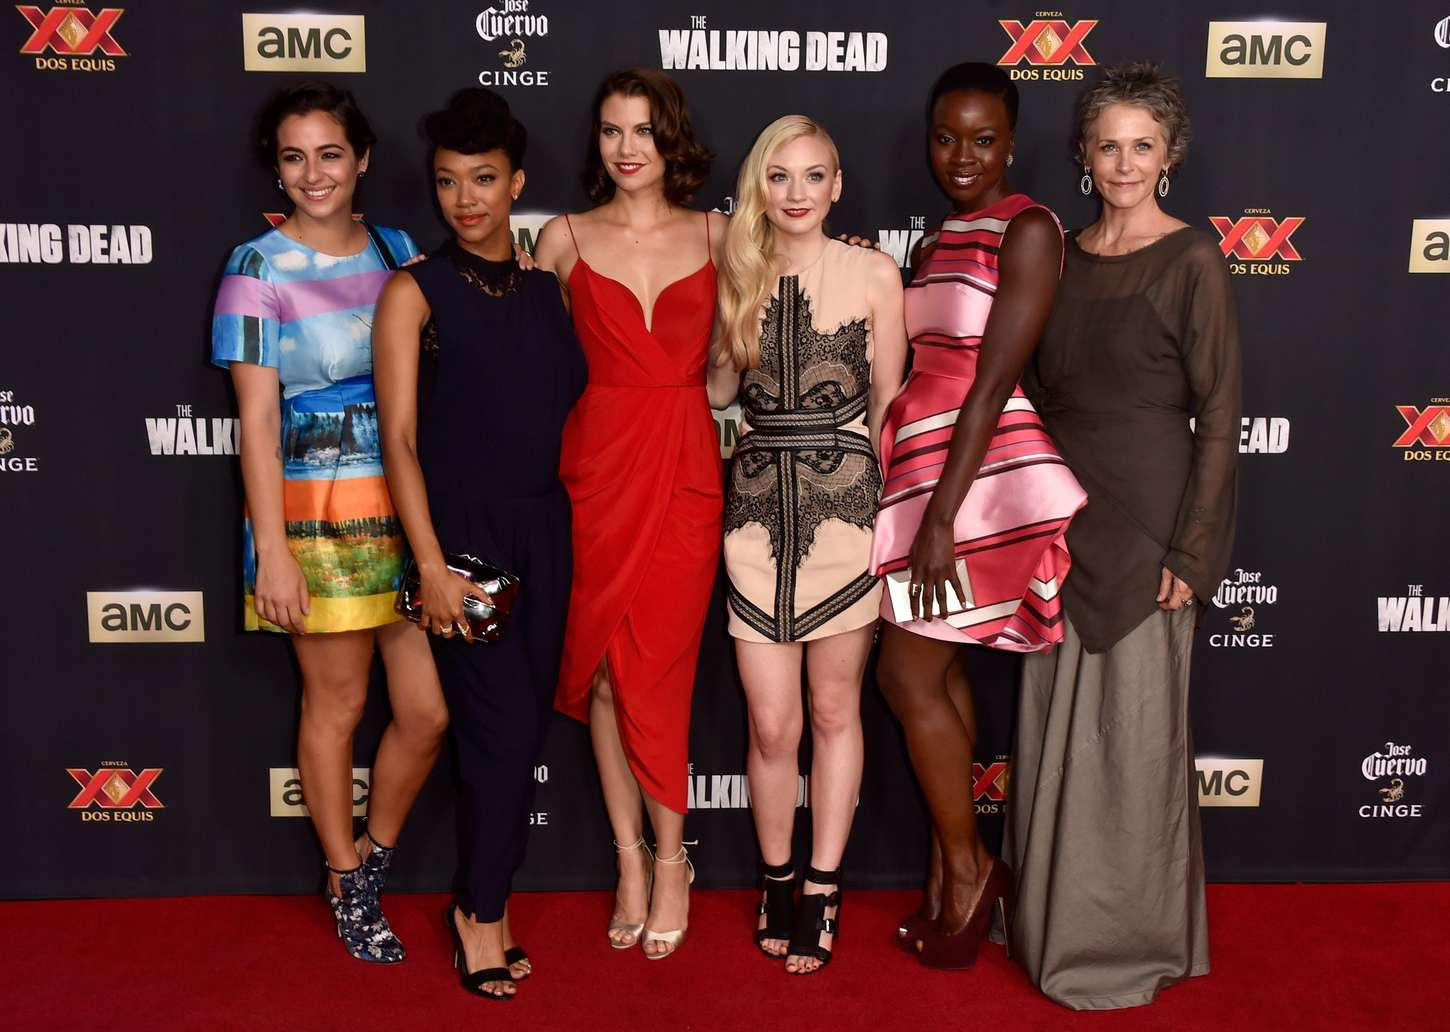 Alanna Masterson 2014 : Alanna Masterson: The Walking Dead Season 5 Premiere -05